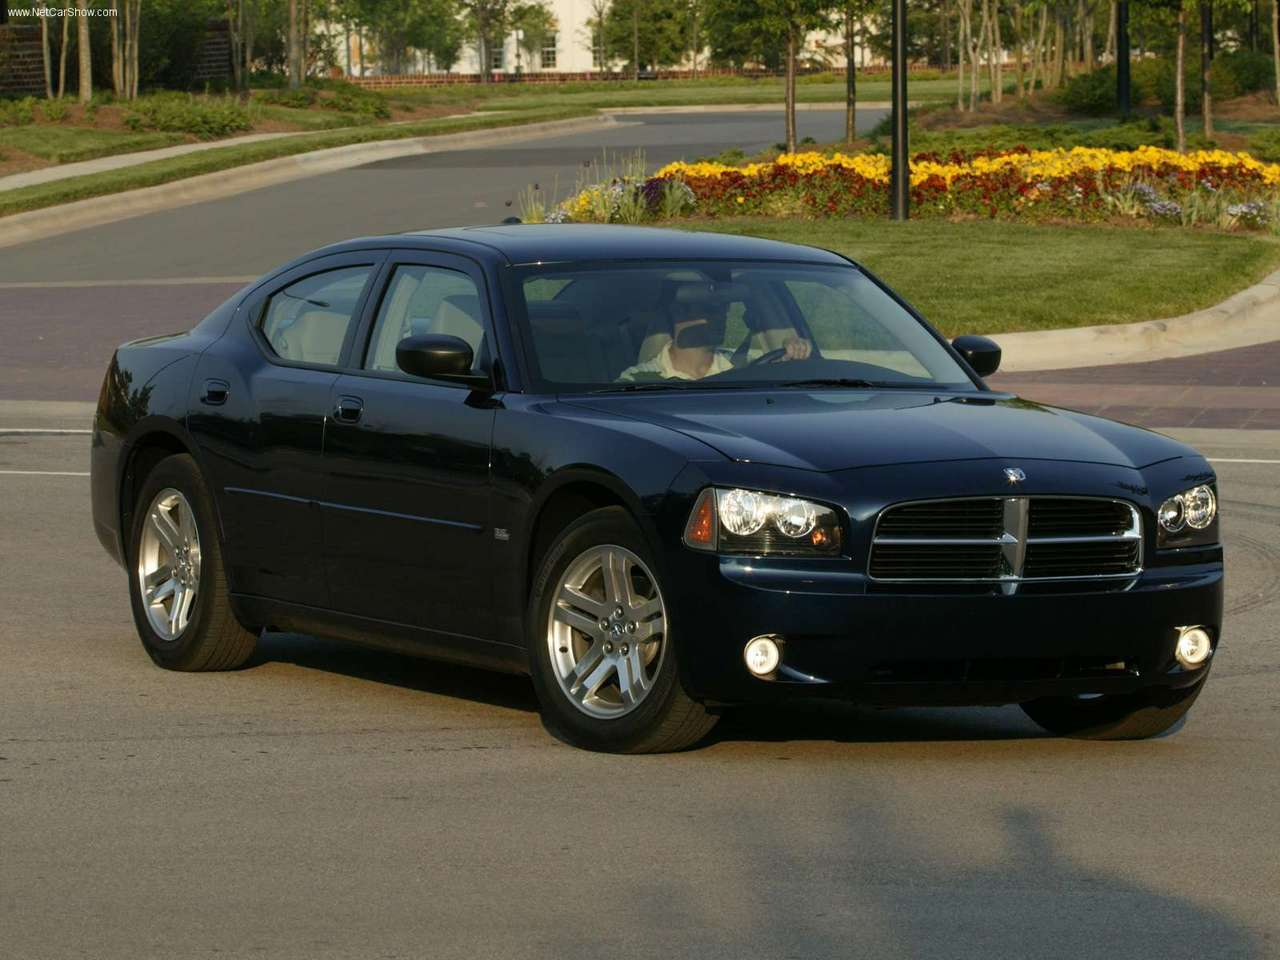 2006 dodge charger sxt. Black Bedroom Furniture Sets. Home Design Ideas